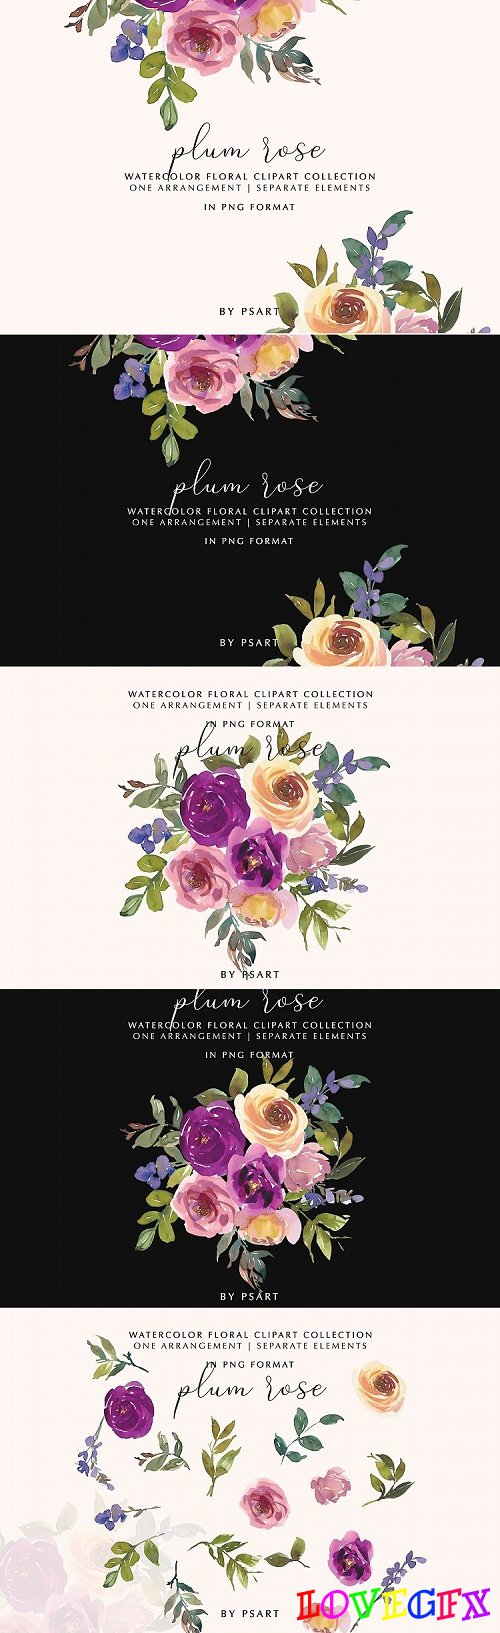 Plum and Blush Watercolor Floral Clipart Collection - 415940